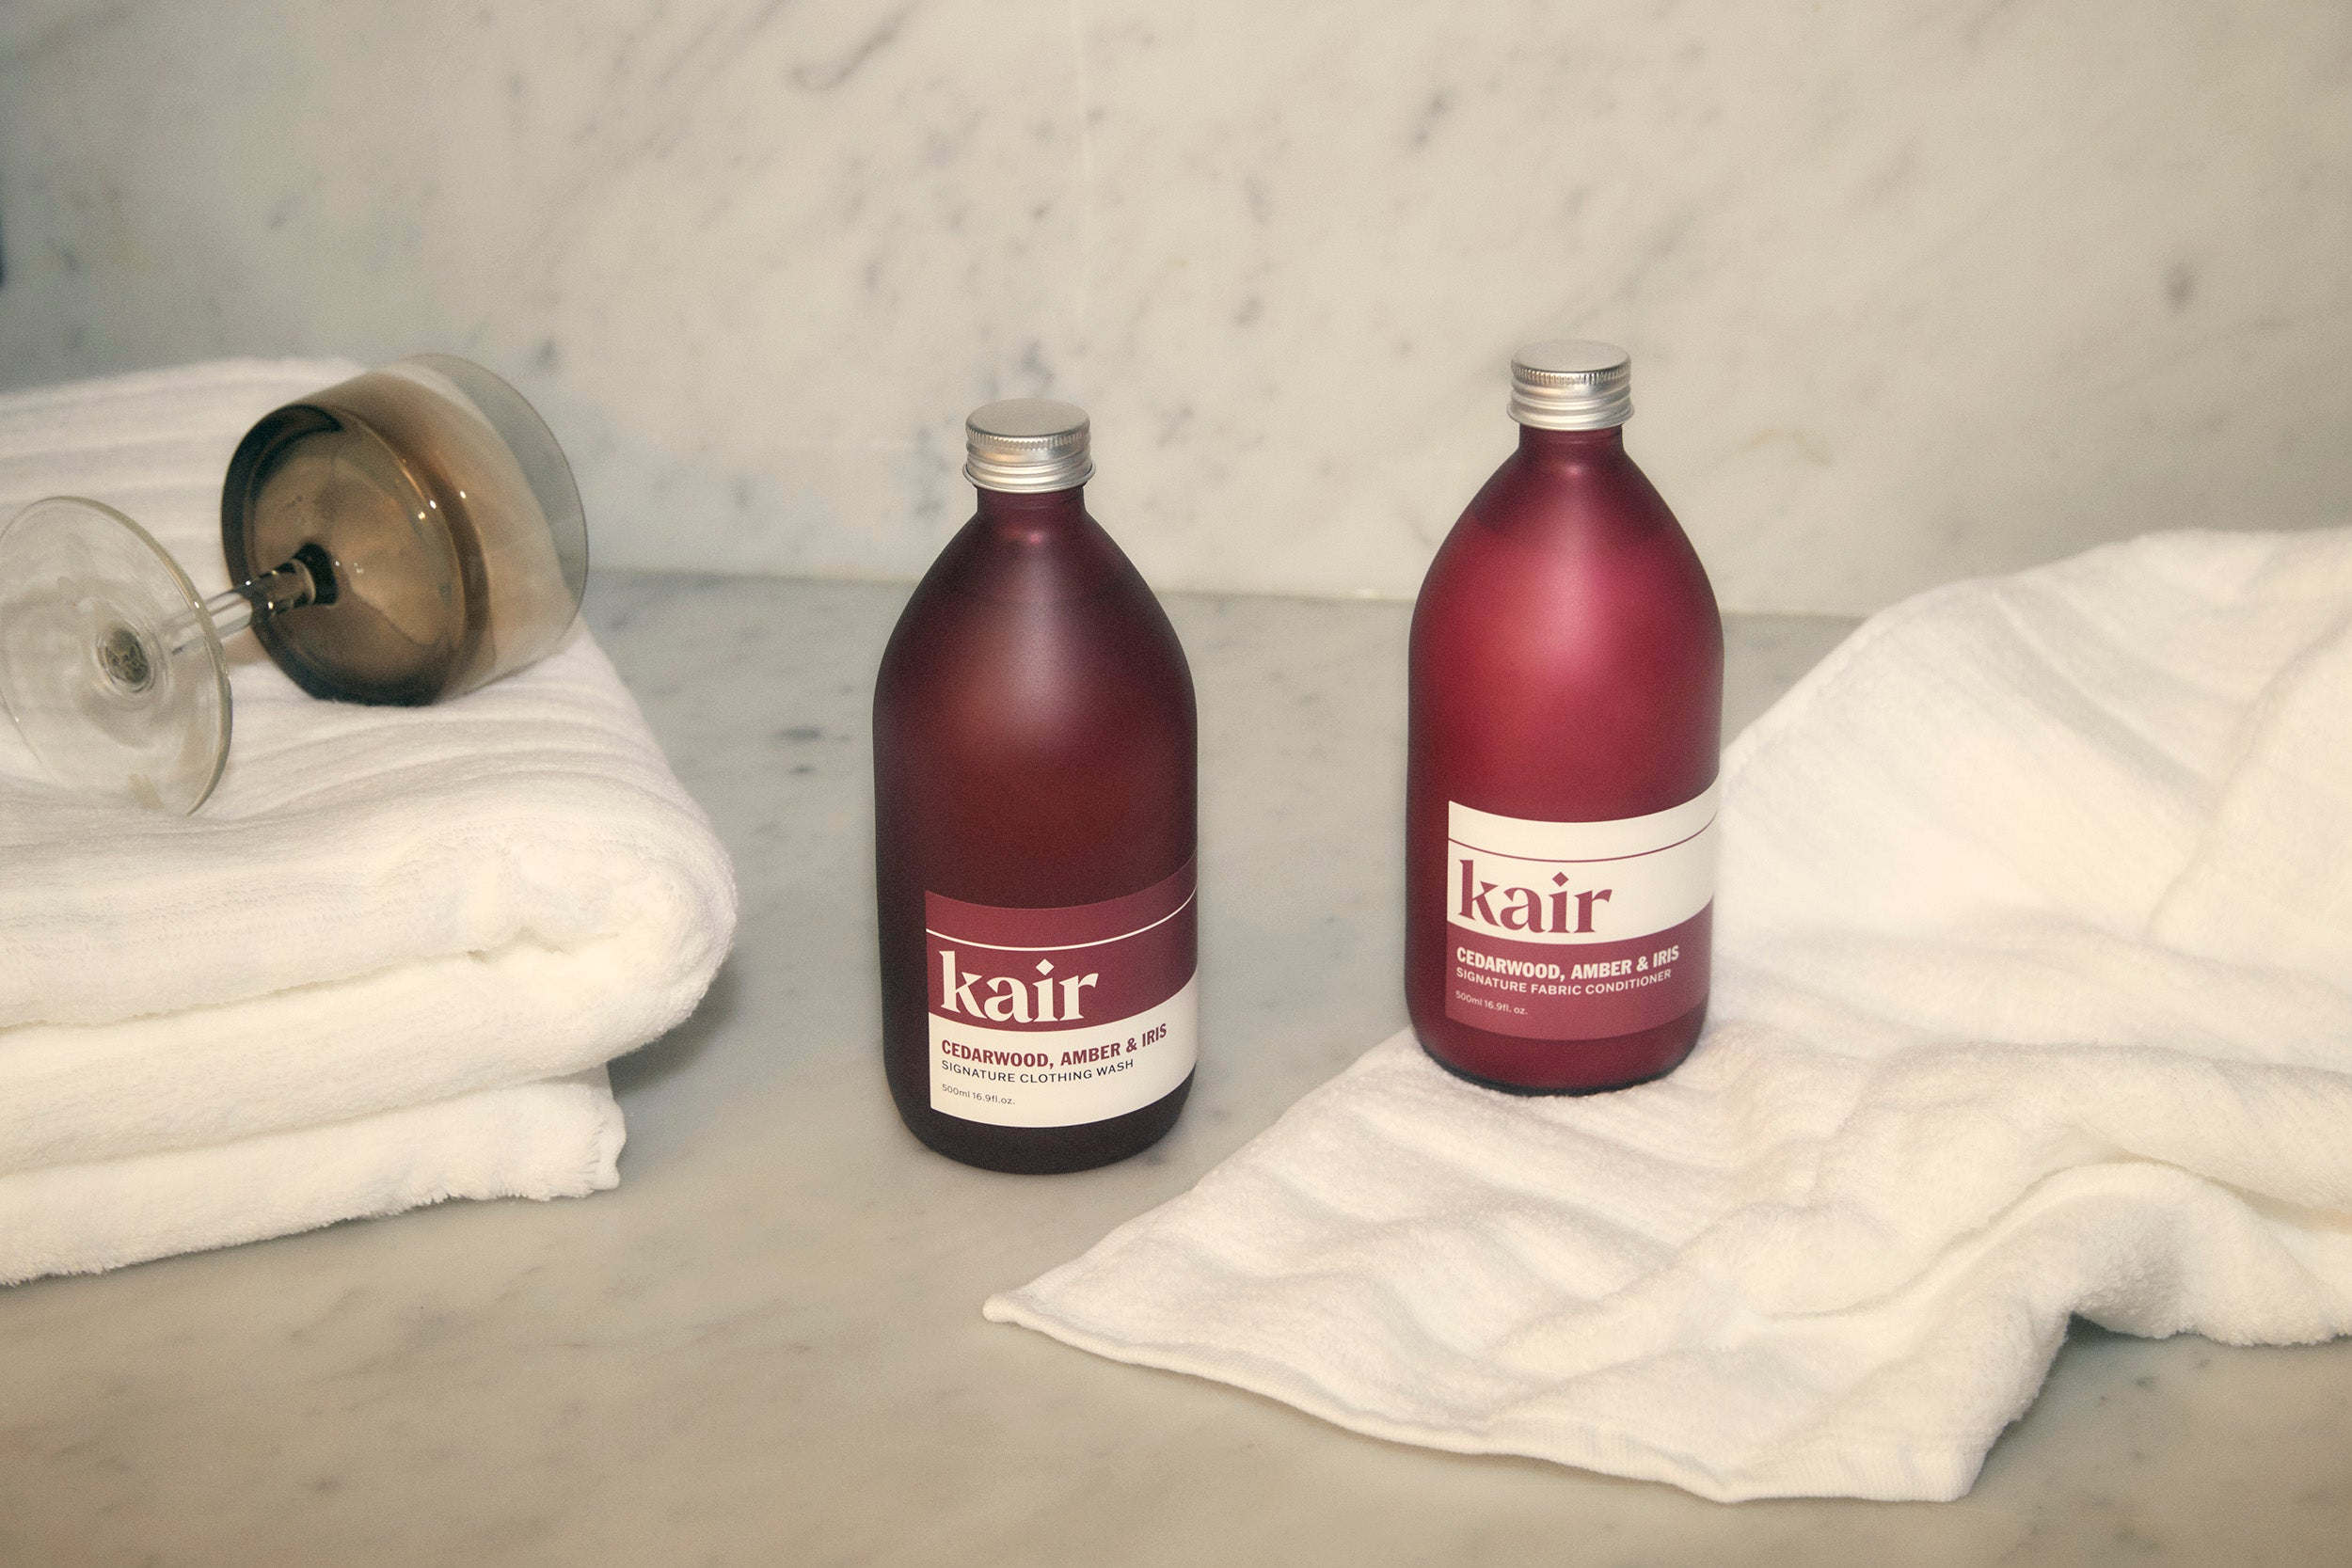 Kair Signature Fabric Conditioner - Cedarwood, Amber & Iris and Wild Juniper & Bergamot positioned among soft towels and a wine glass